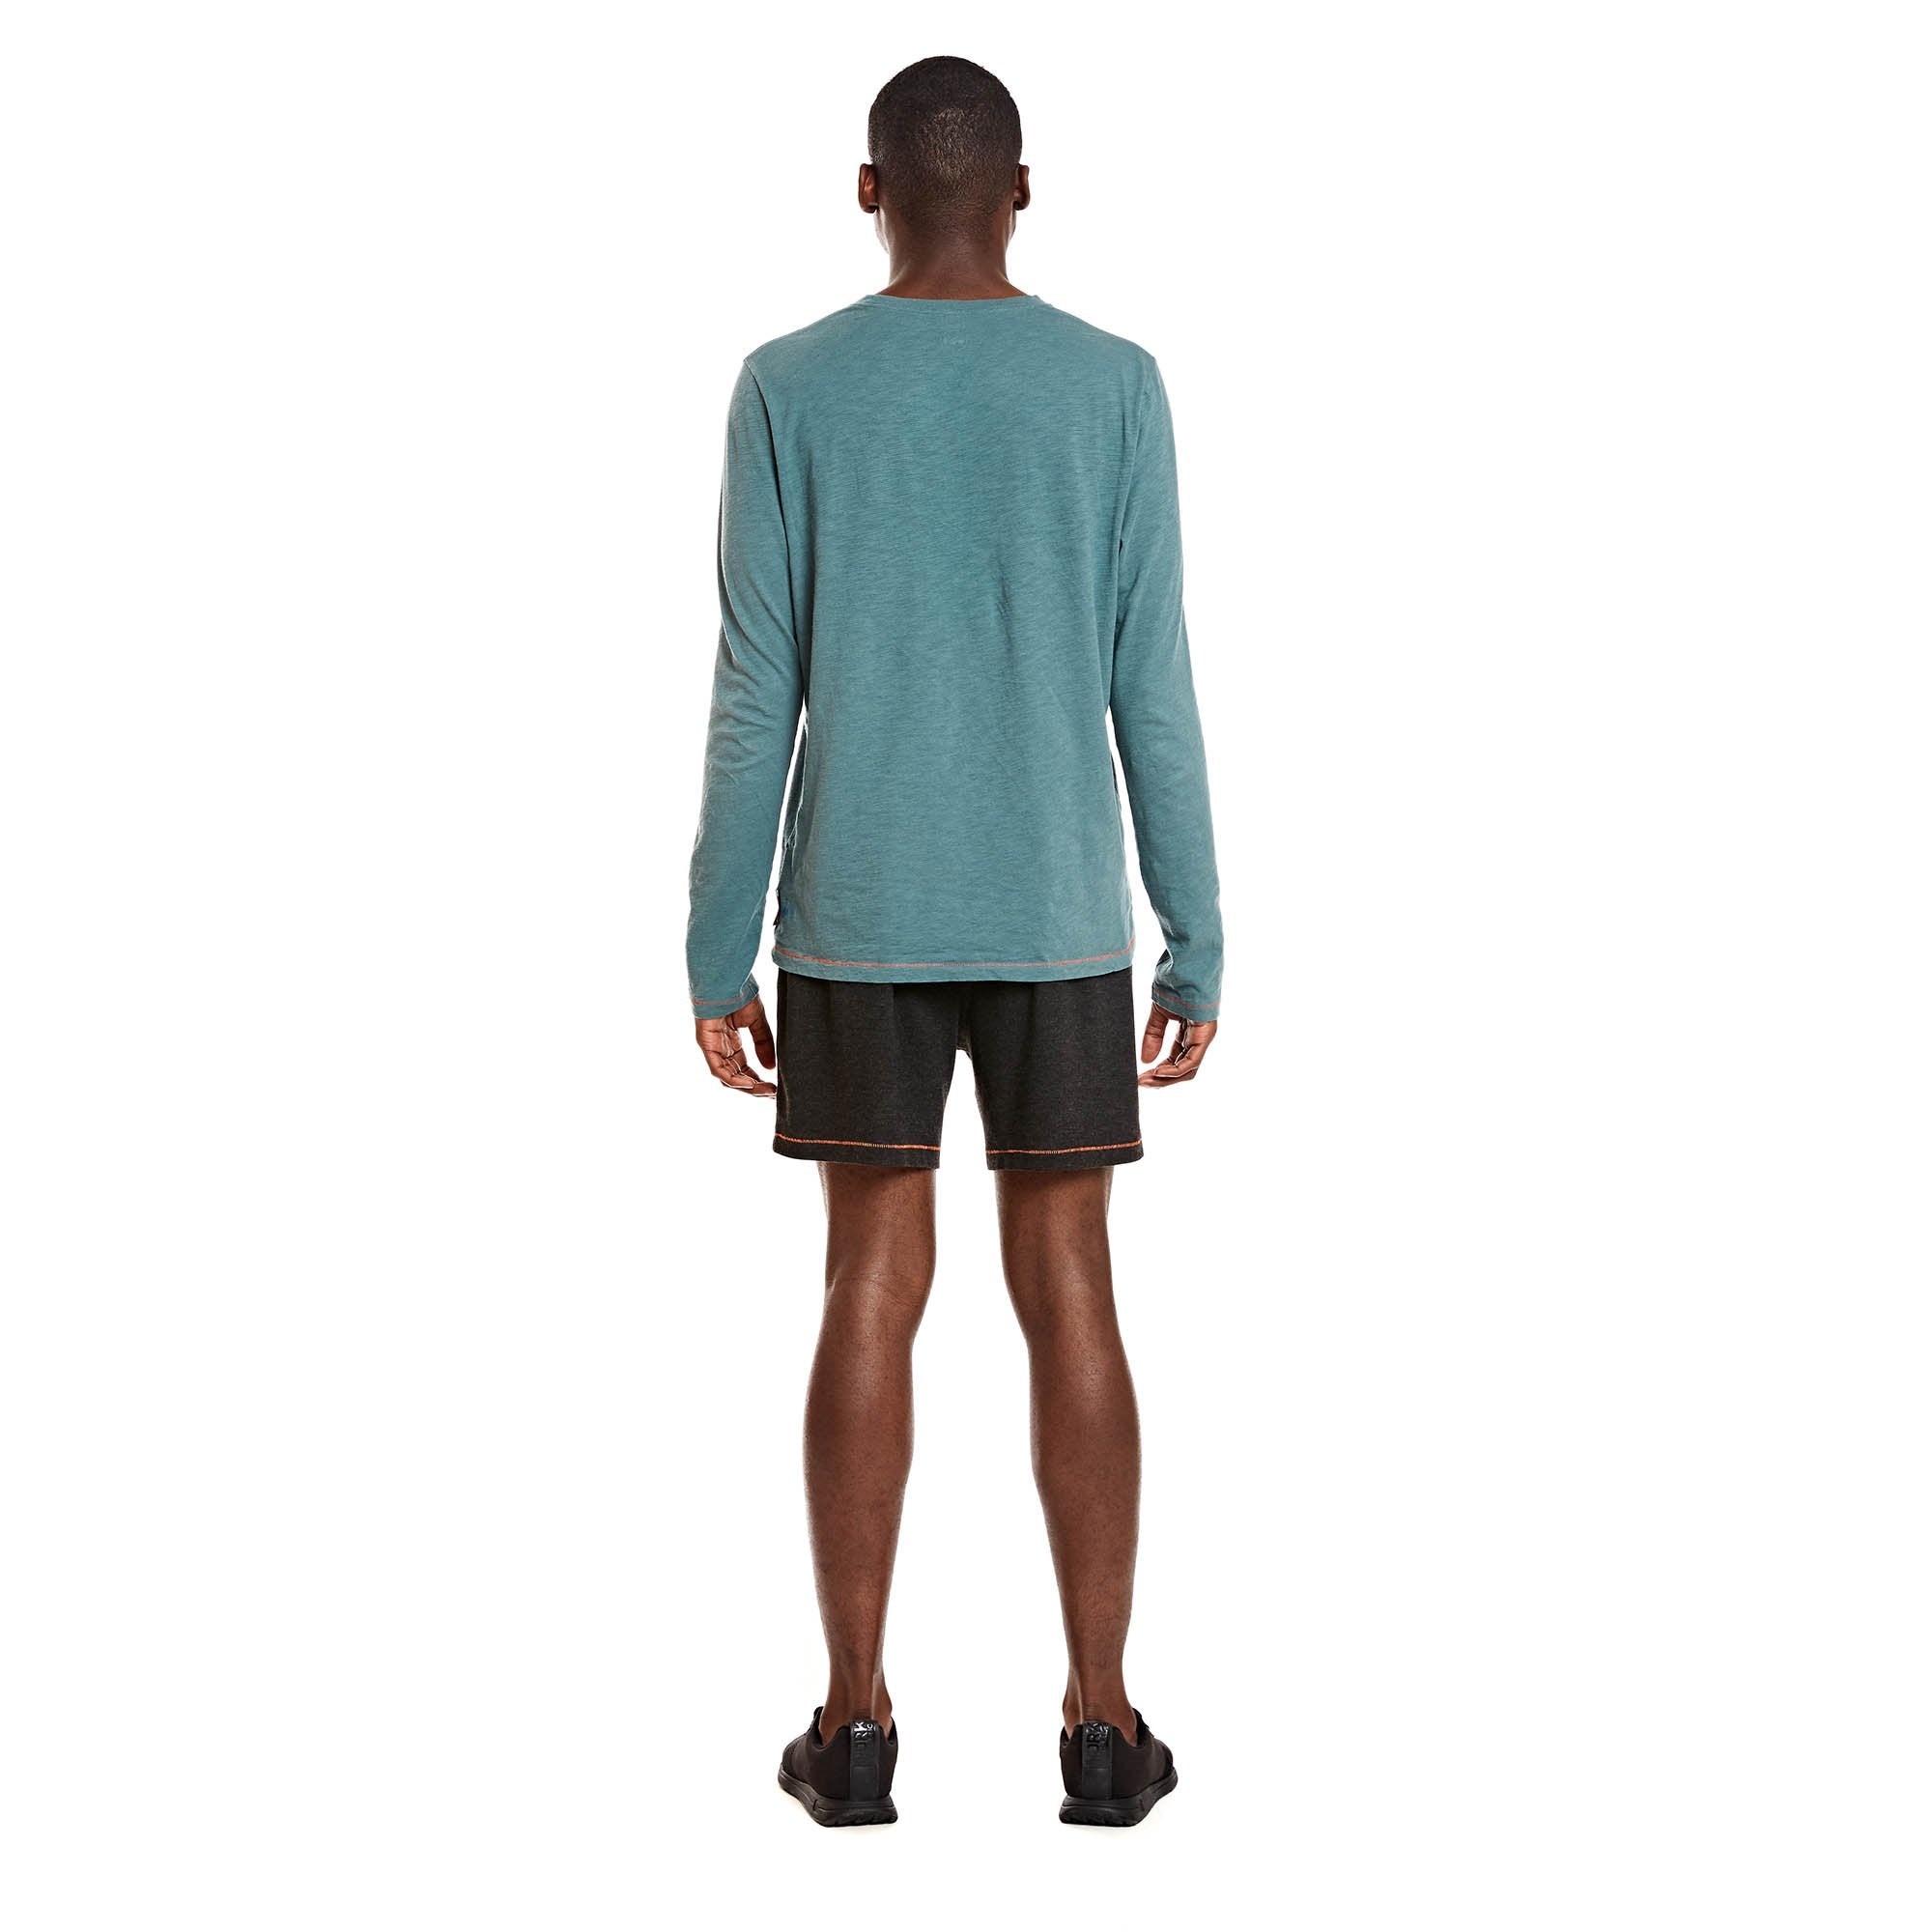 Alpaca Blend Long Sleeve (M) - Sea Pine